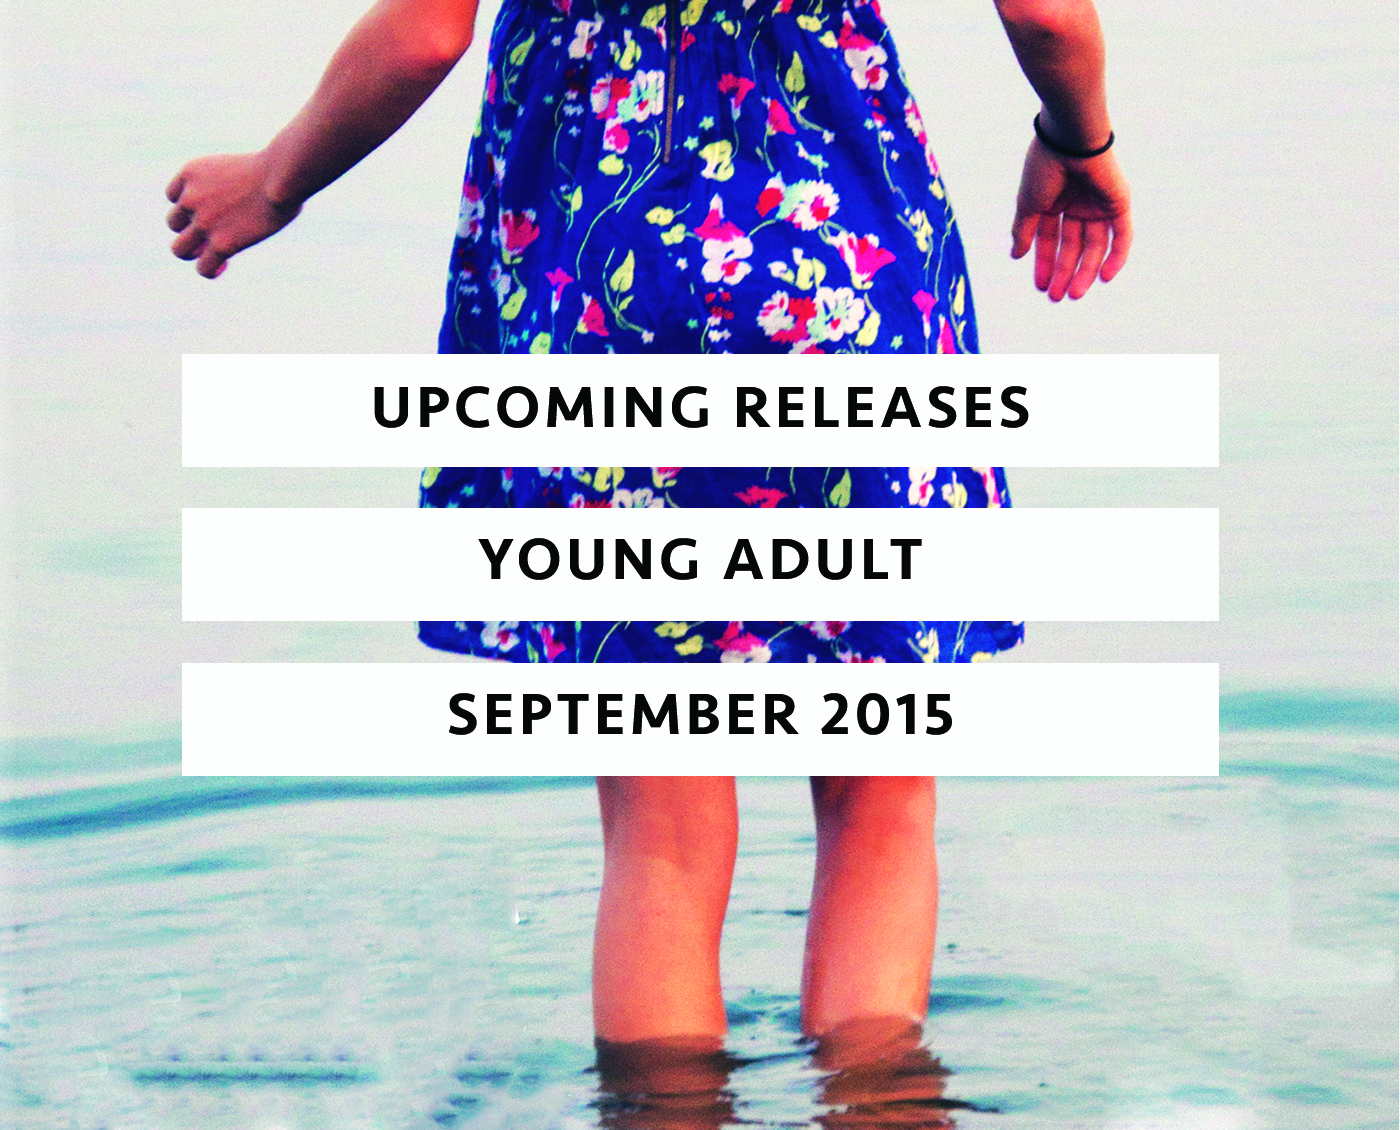 Upcoming Releases September 2015